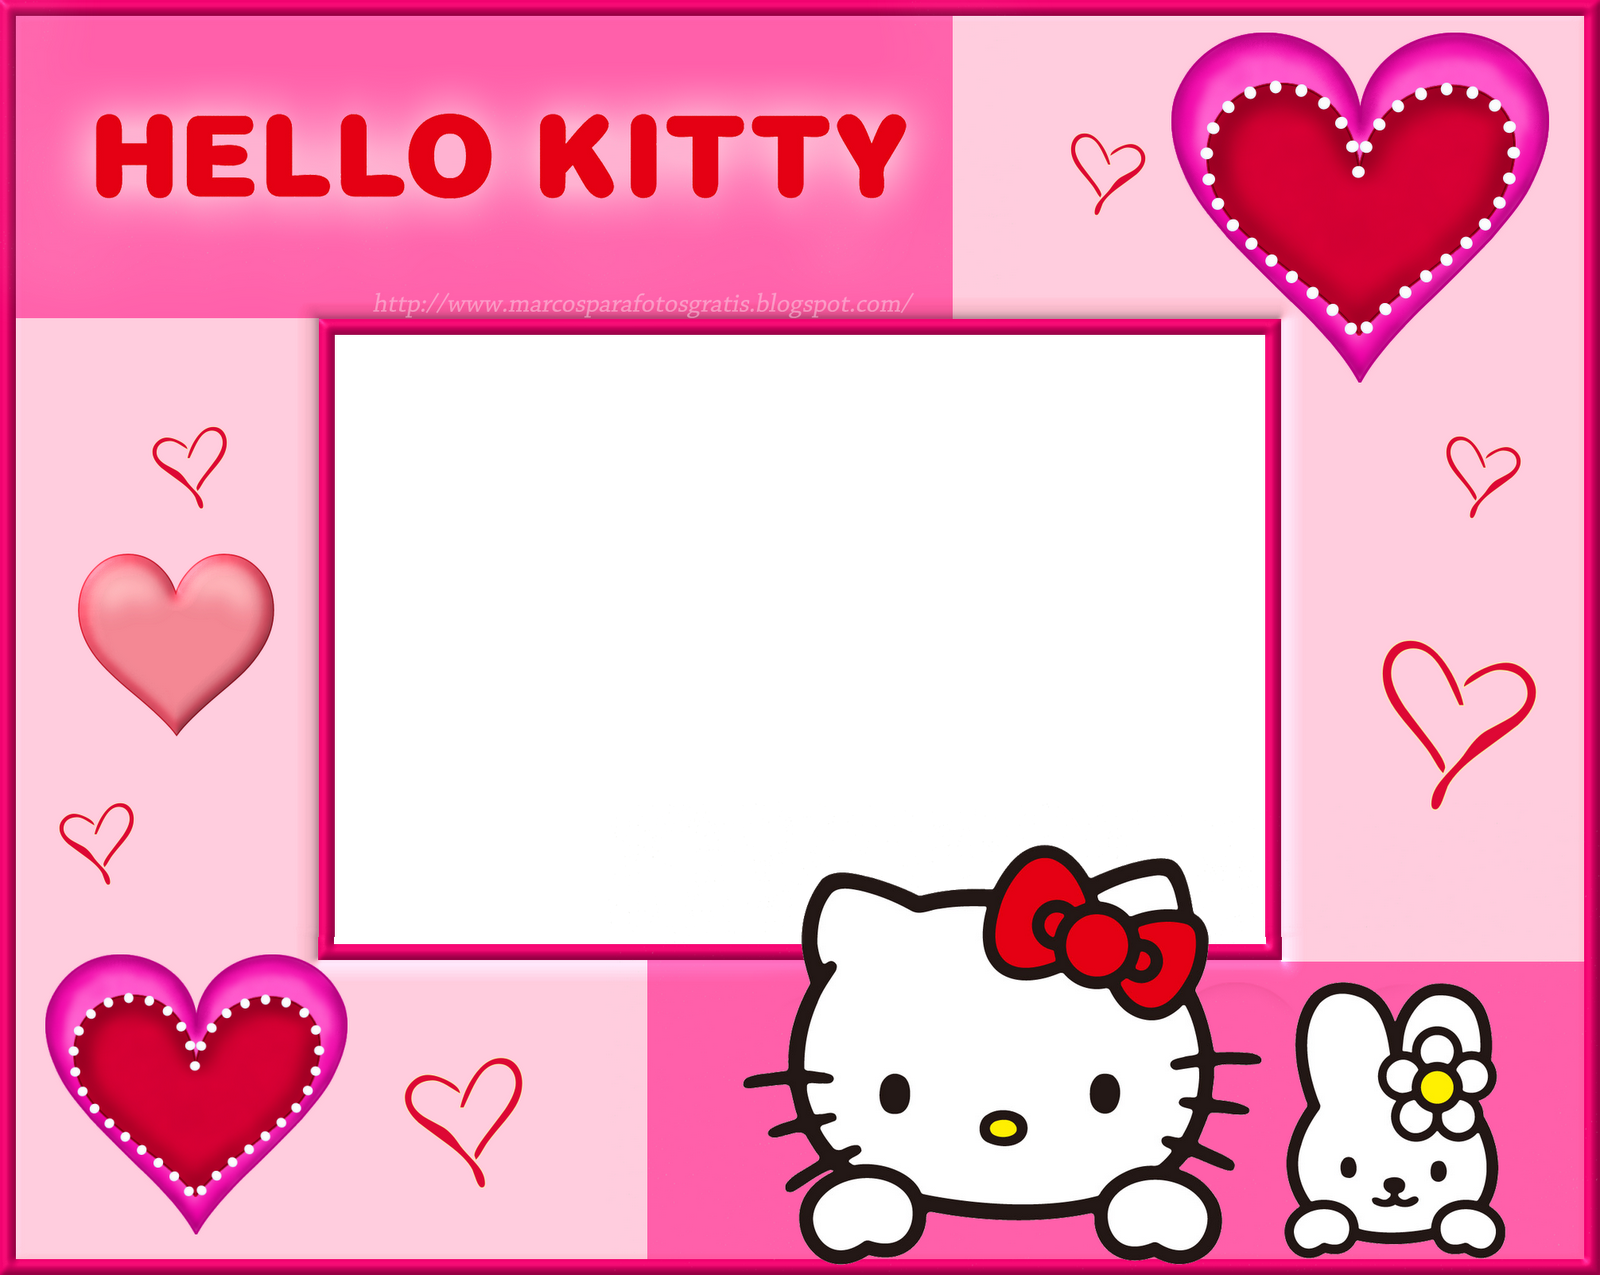 Computer Wallpaper Hello Kitty Games For Girls | ... para ... - photo#26